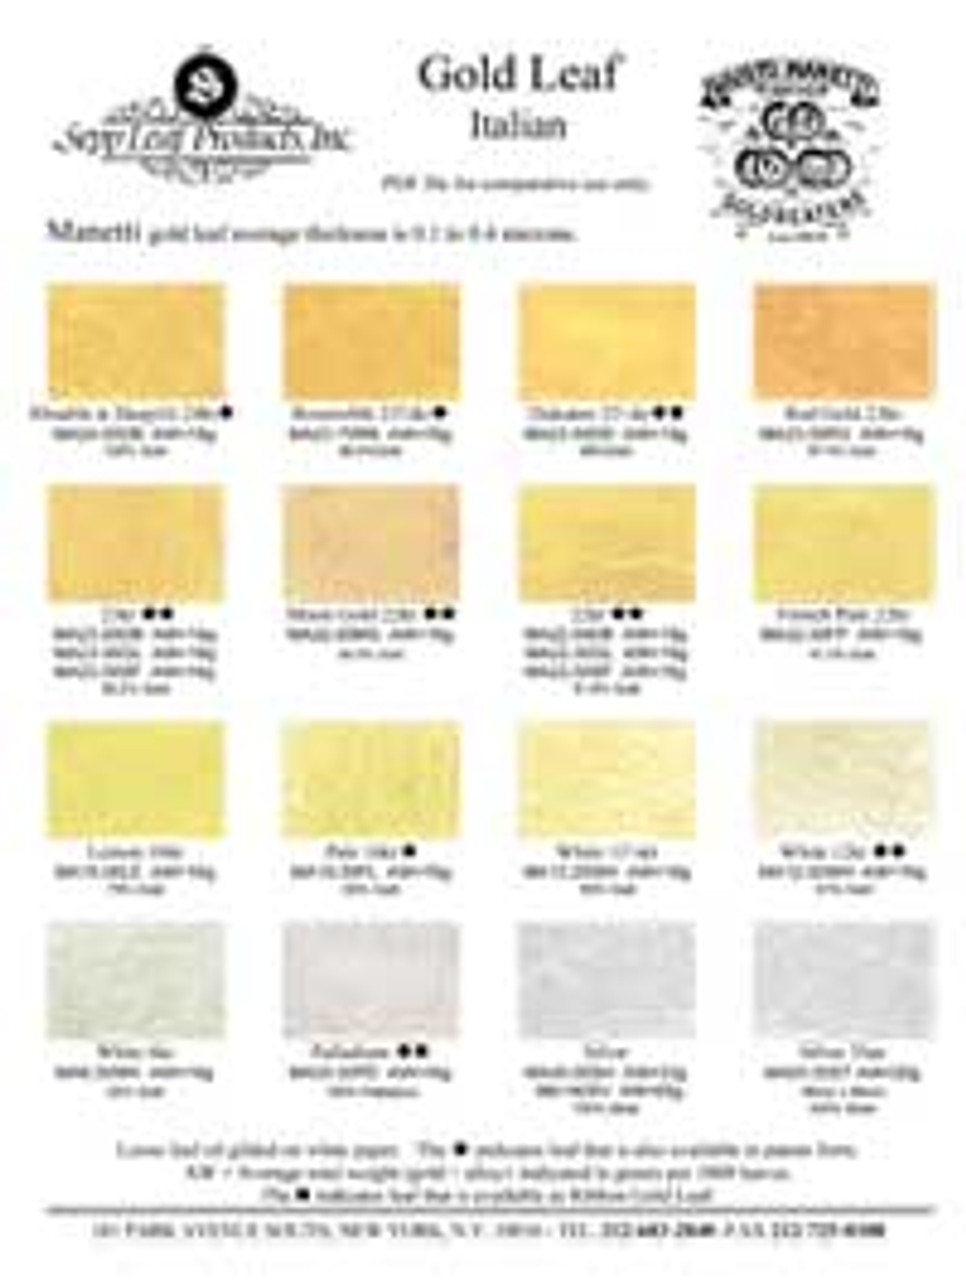 Hand gilded Manetti color chart, oil gilded swatches on neutral gray coated paper stock.